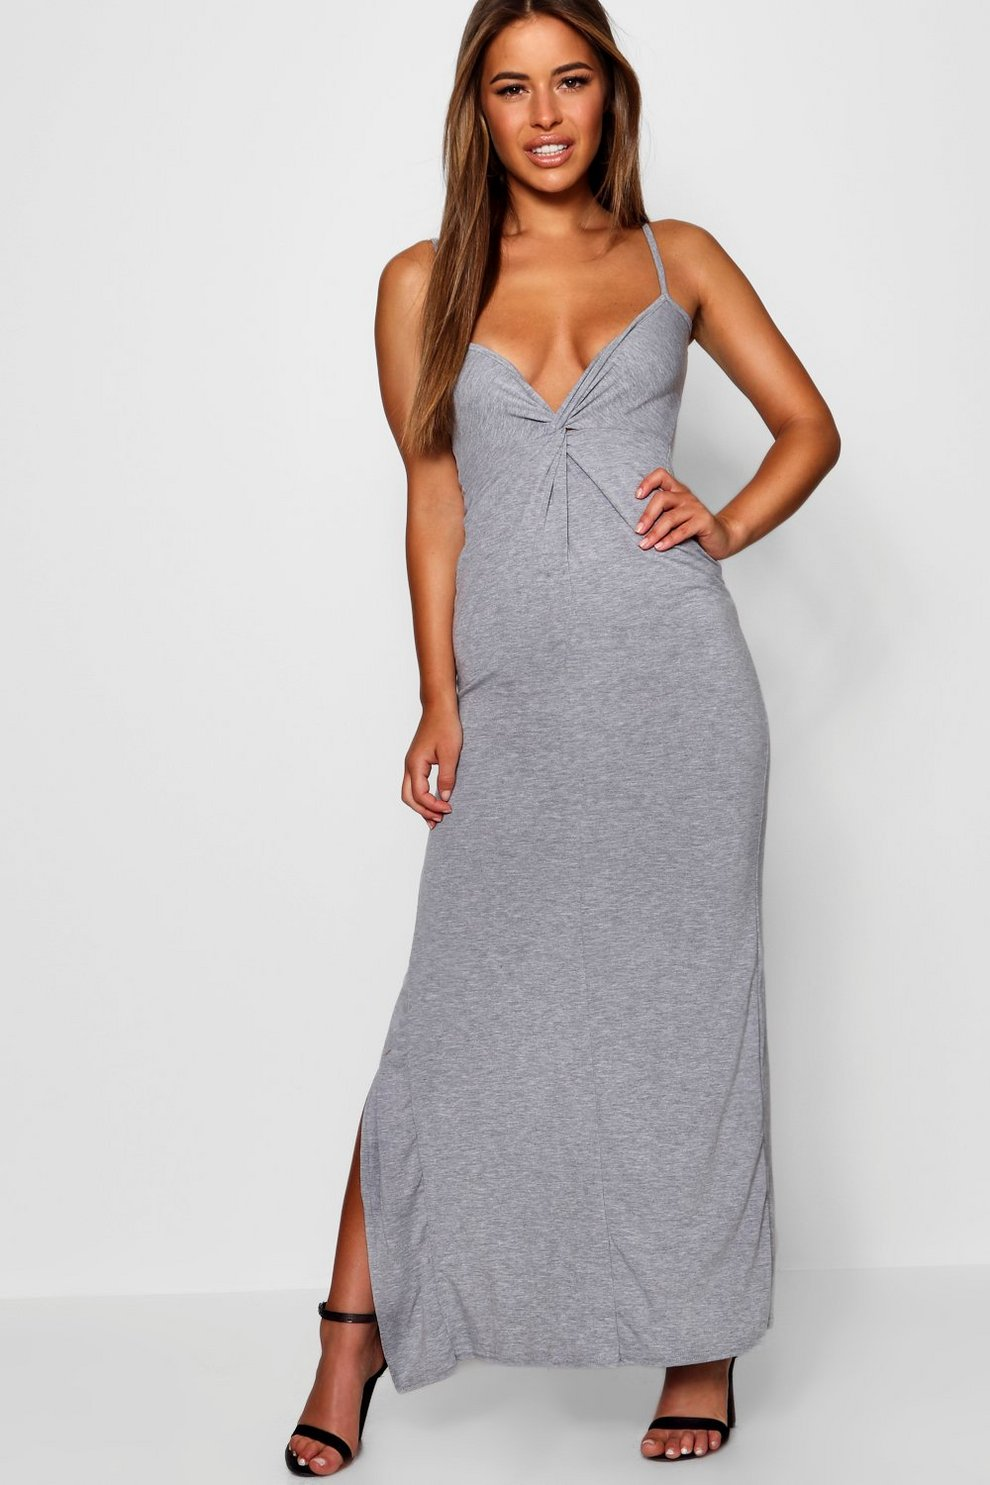 Boohoo Petite Knot Front Back Maxi Dress Amazing Price Sale Online Cheap Pictures Clearance Very Cheap Shop tRjAvmkU